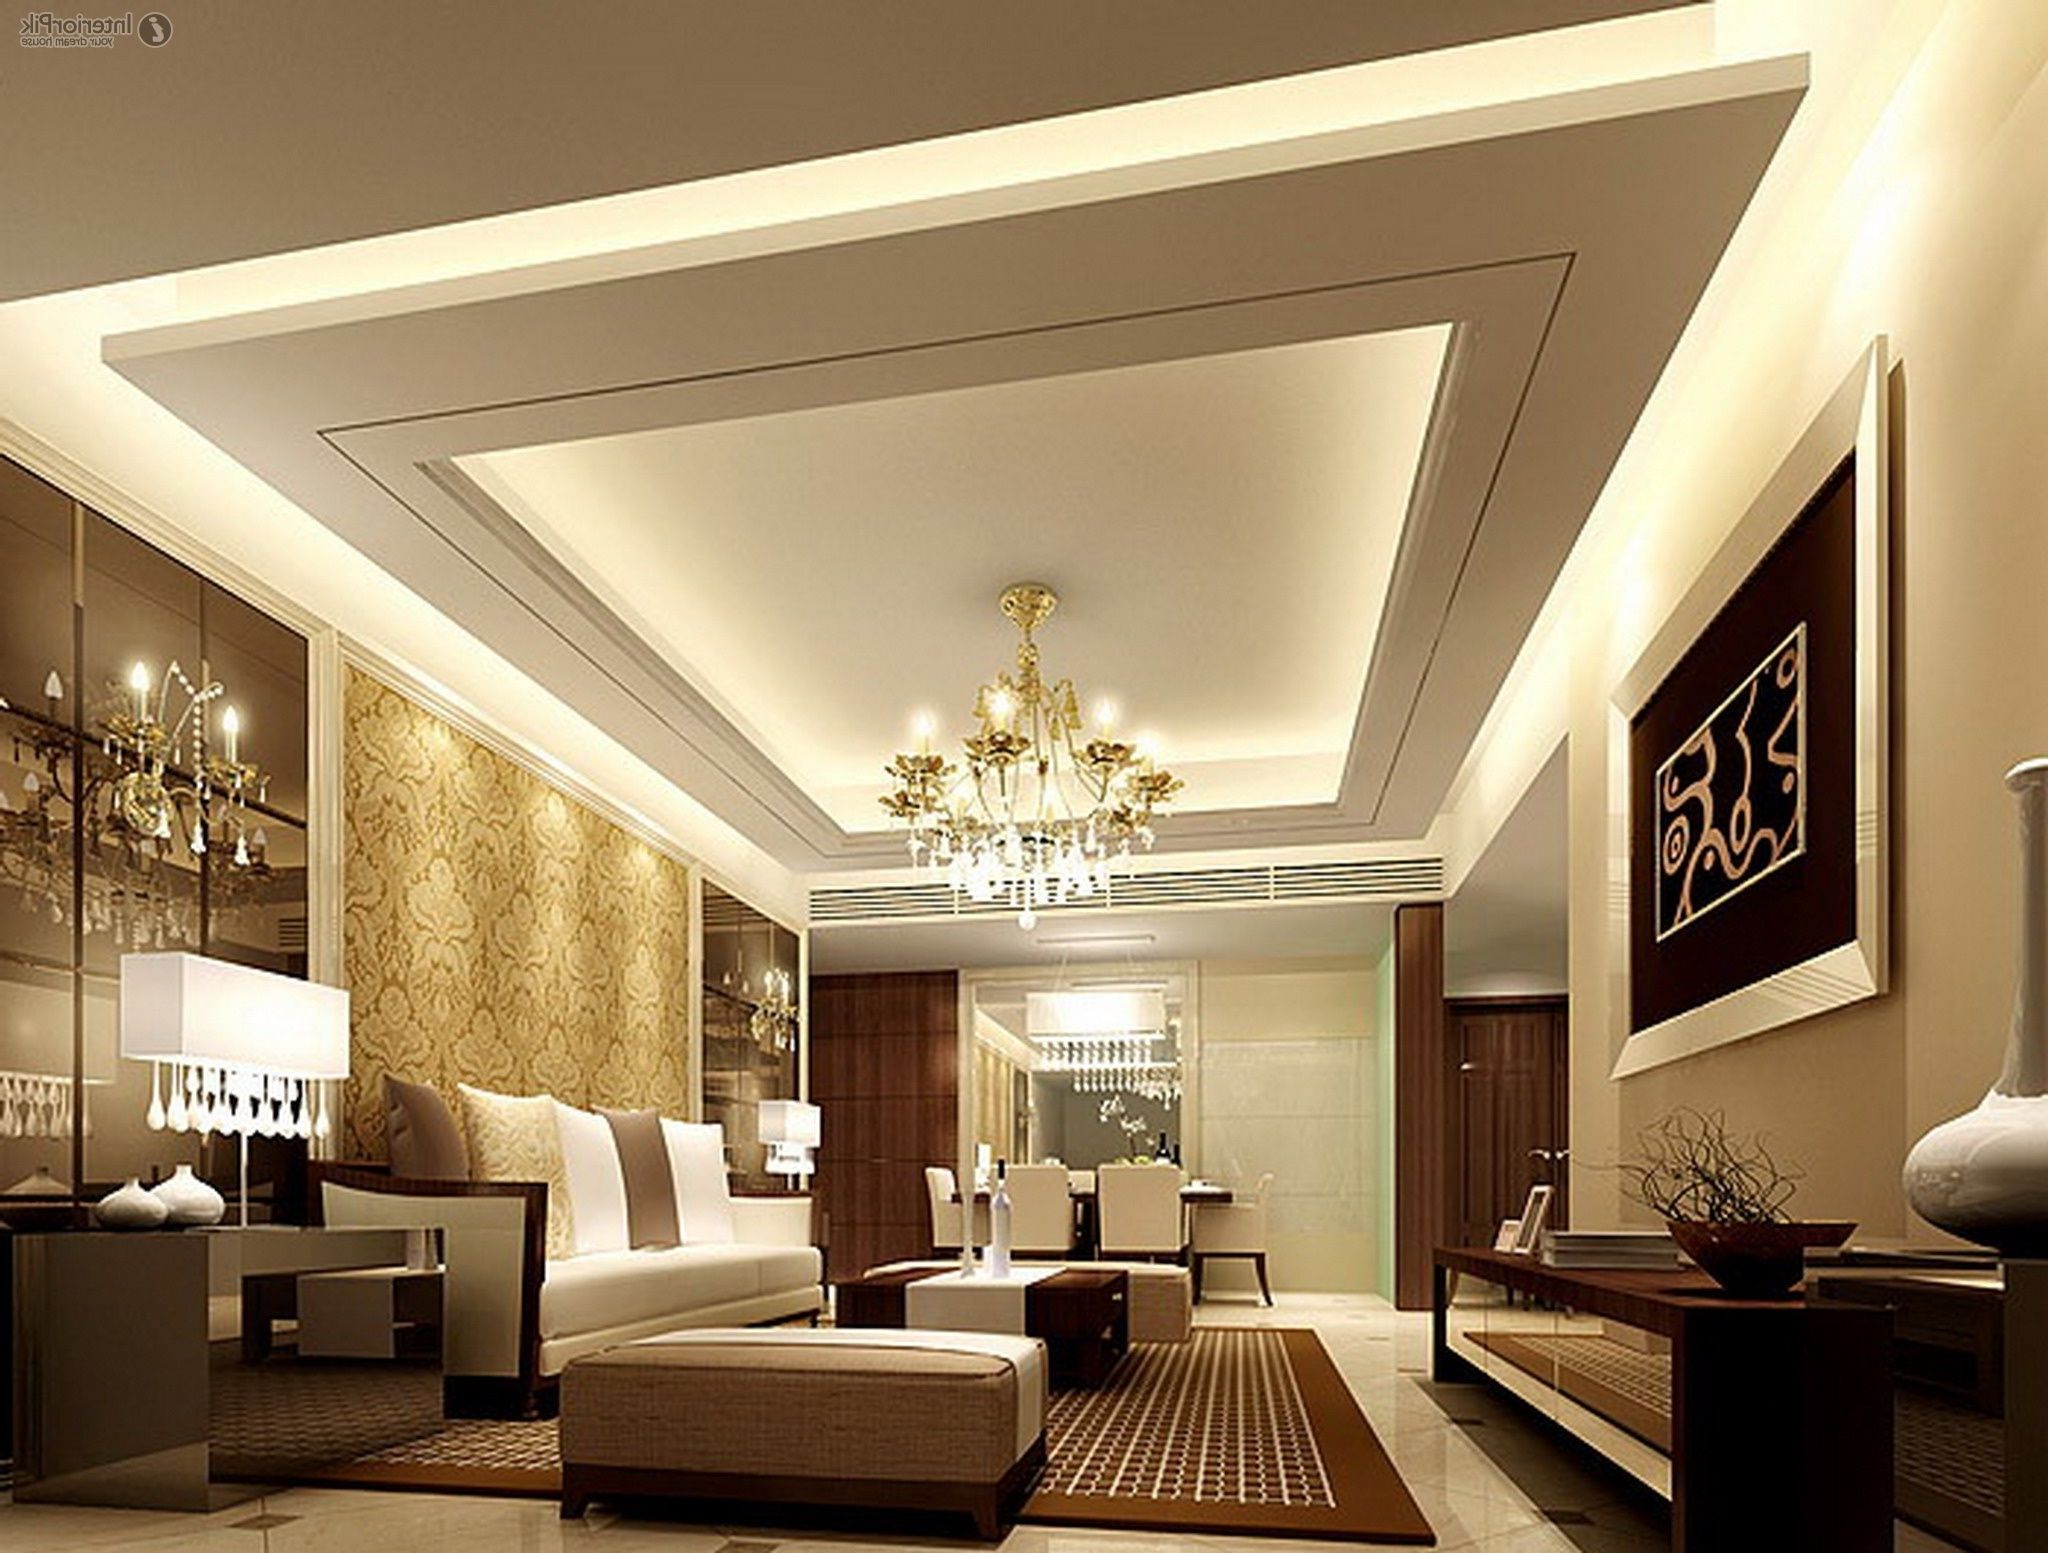 Incroyable Gypsum Ceiling Design For Living Room Lighting Home Decorate Best Living  Room Ceiling Design